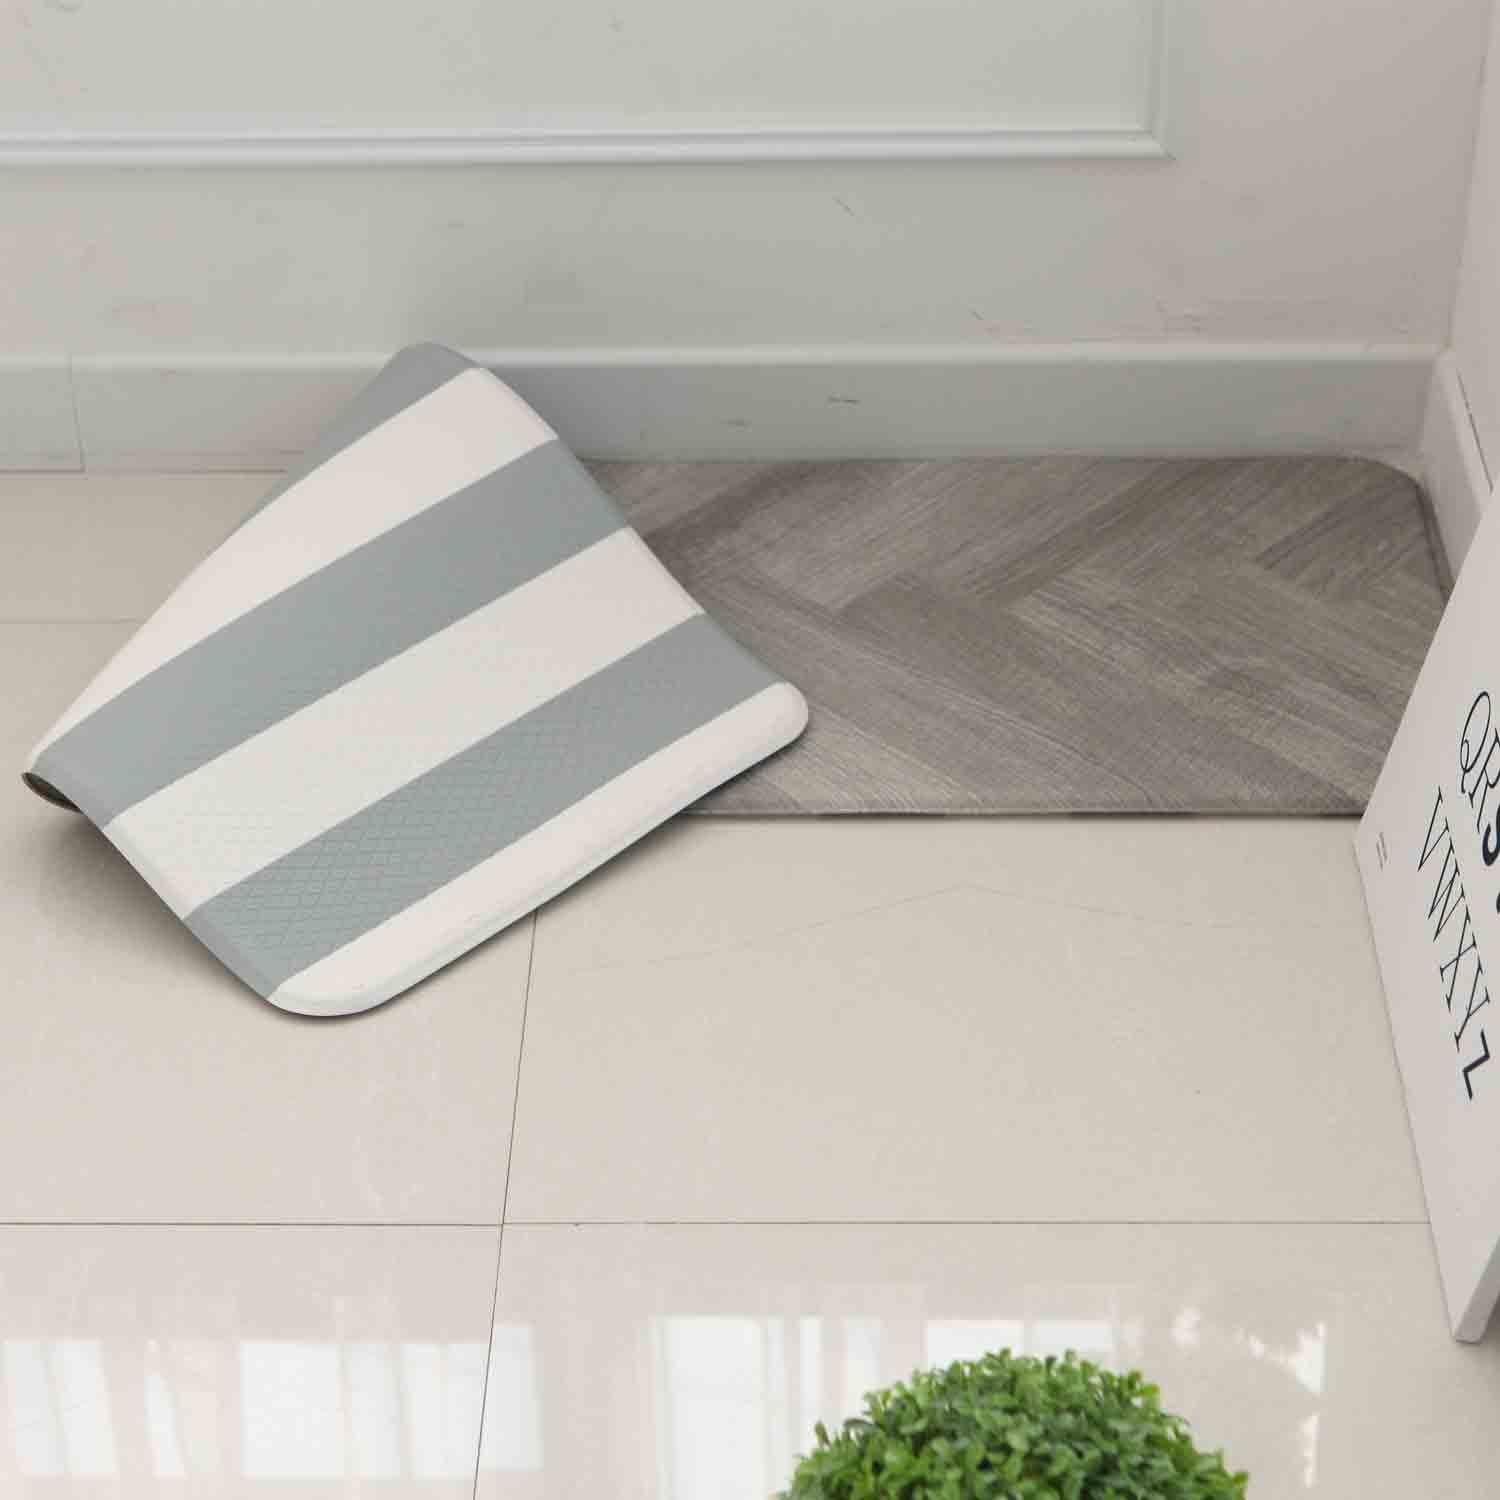 Amazon Com Anti Fatigue Cushion Stylish Comfort Floor Foam Kitchen Mat Office Mat Waterproof Easy To Clean Soft And Thick Non Toxic Reversible Grey And Stripe 17 X 37 Kitchen Dining